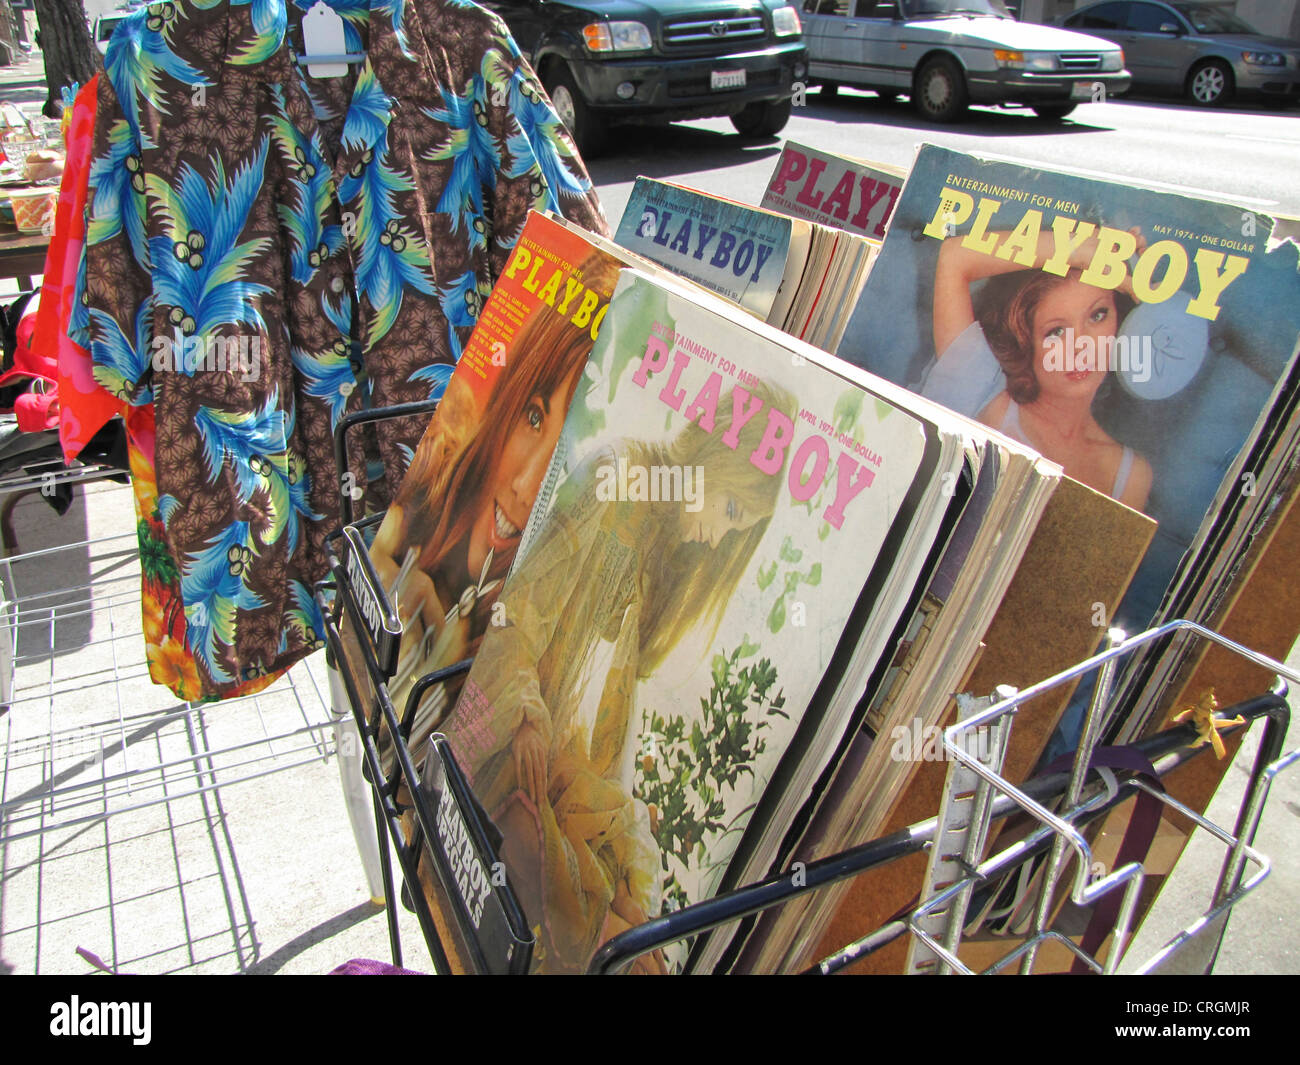 Old antiquarian issues of the Playboy magazine from the seventies on a flea market, USA, California, San Francisco - Stock Image